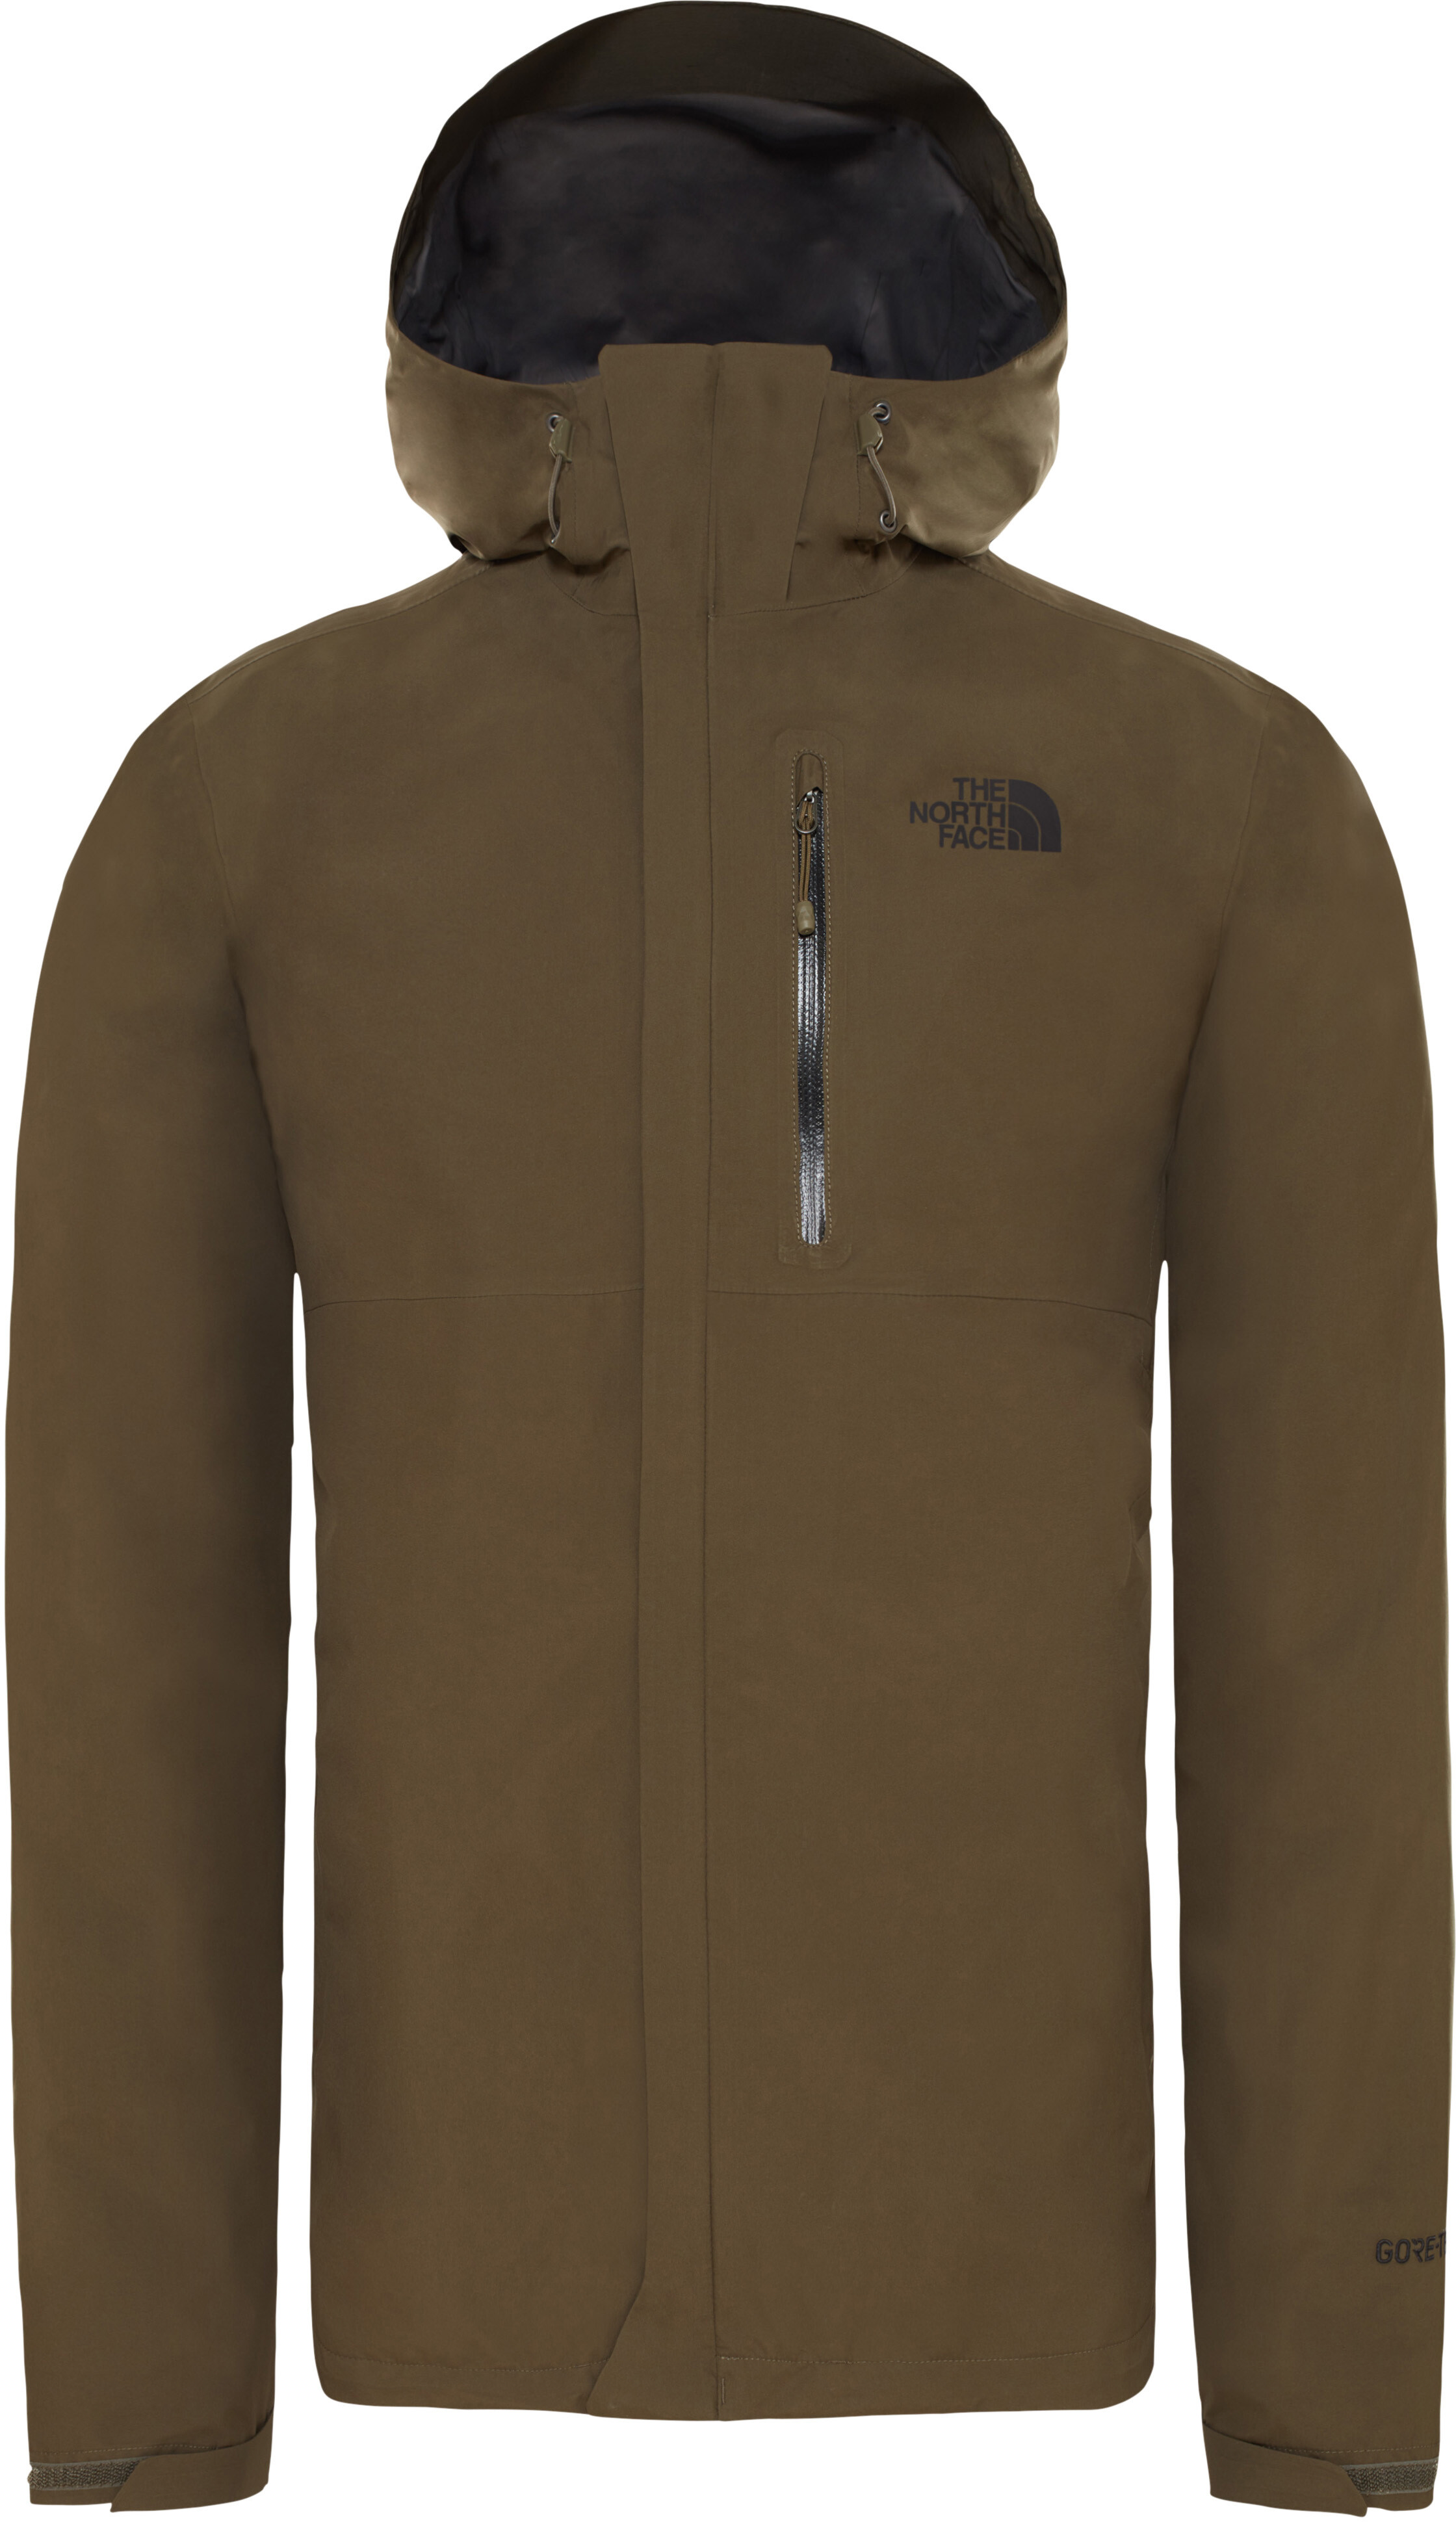 778877af0 The North Face Dryzzle Jacket Men new taupe green